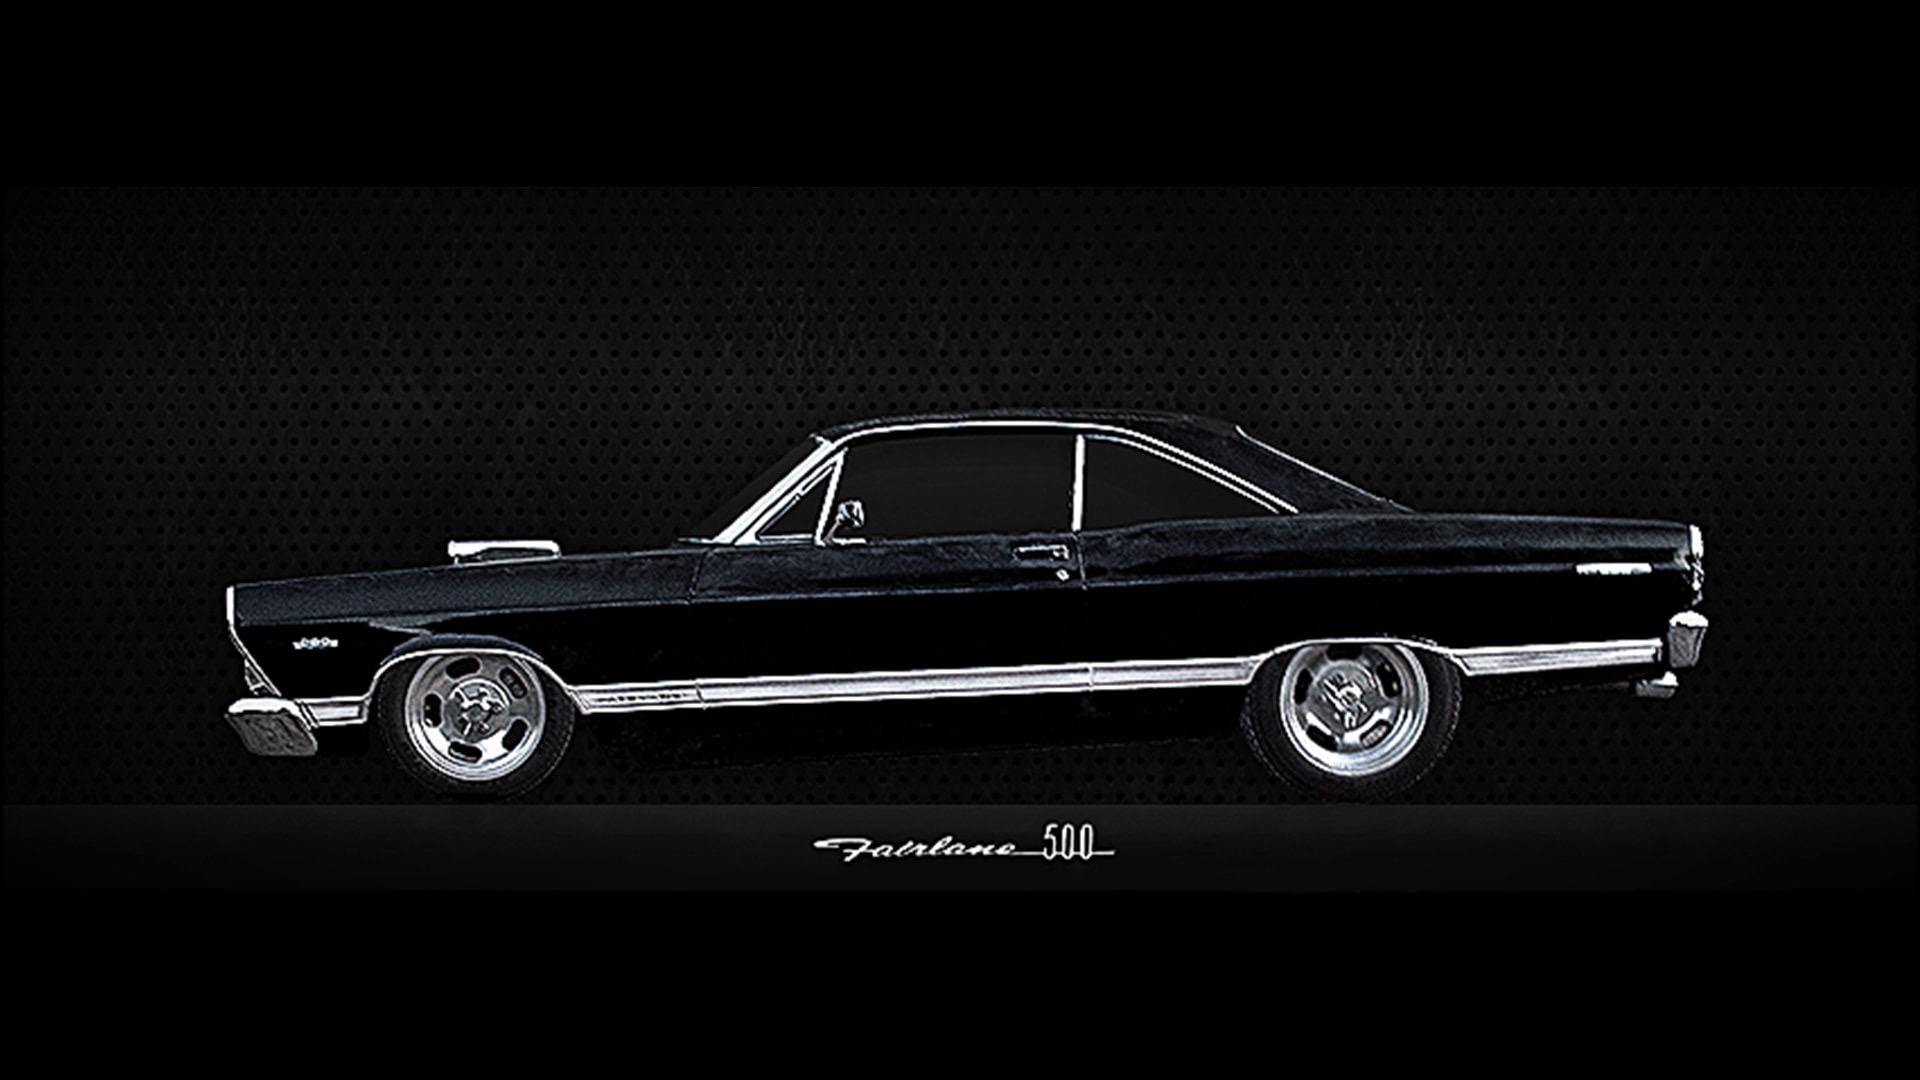 1967FordFairlane500_1920x1080(©2013 Joe Latimer)